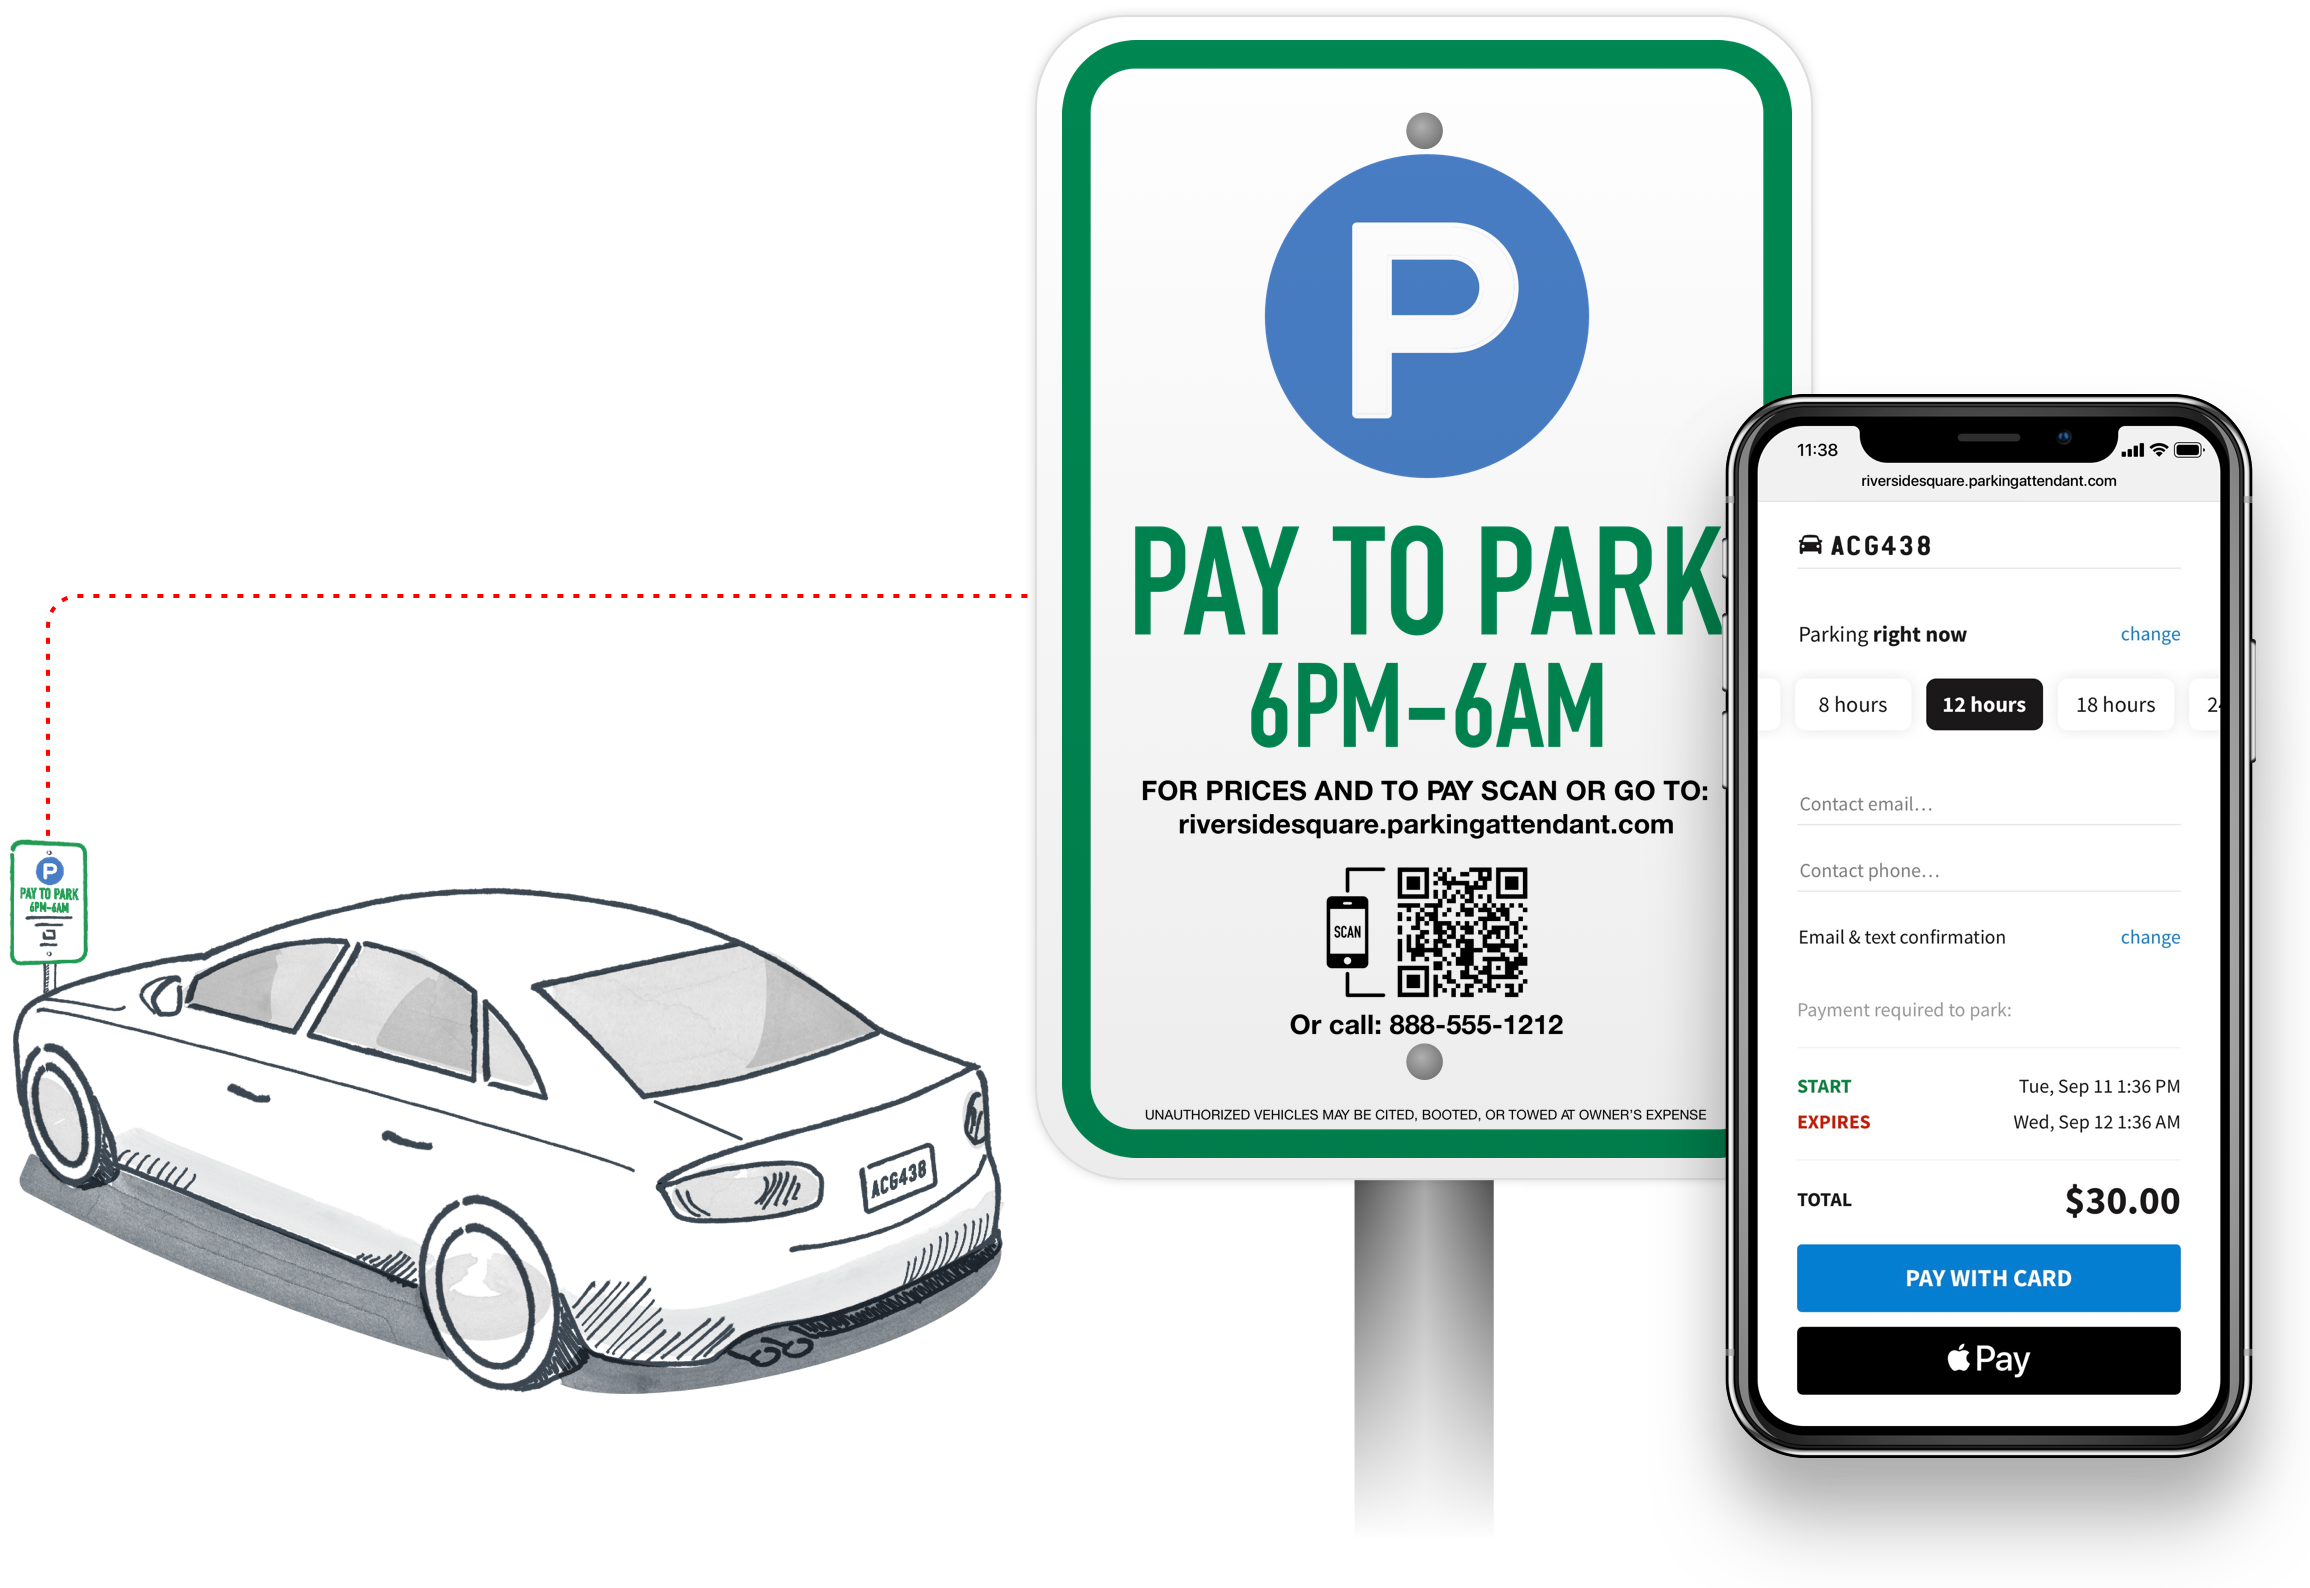 pay-to-park-header.png